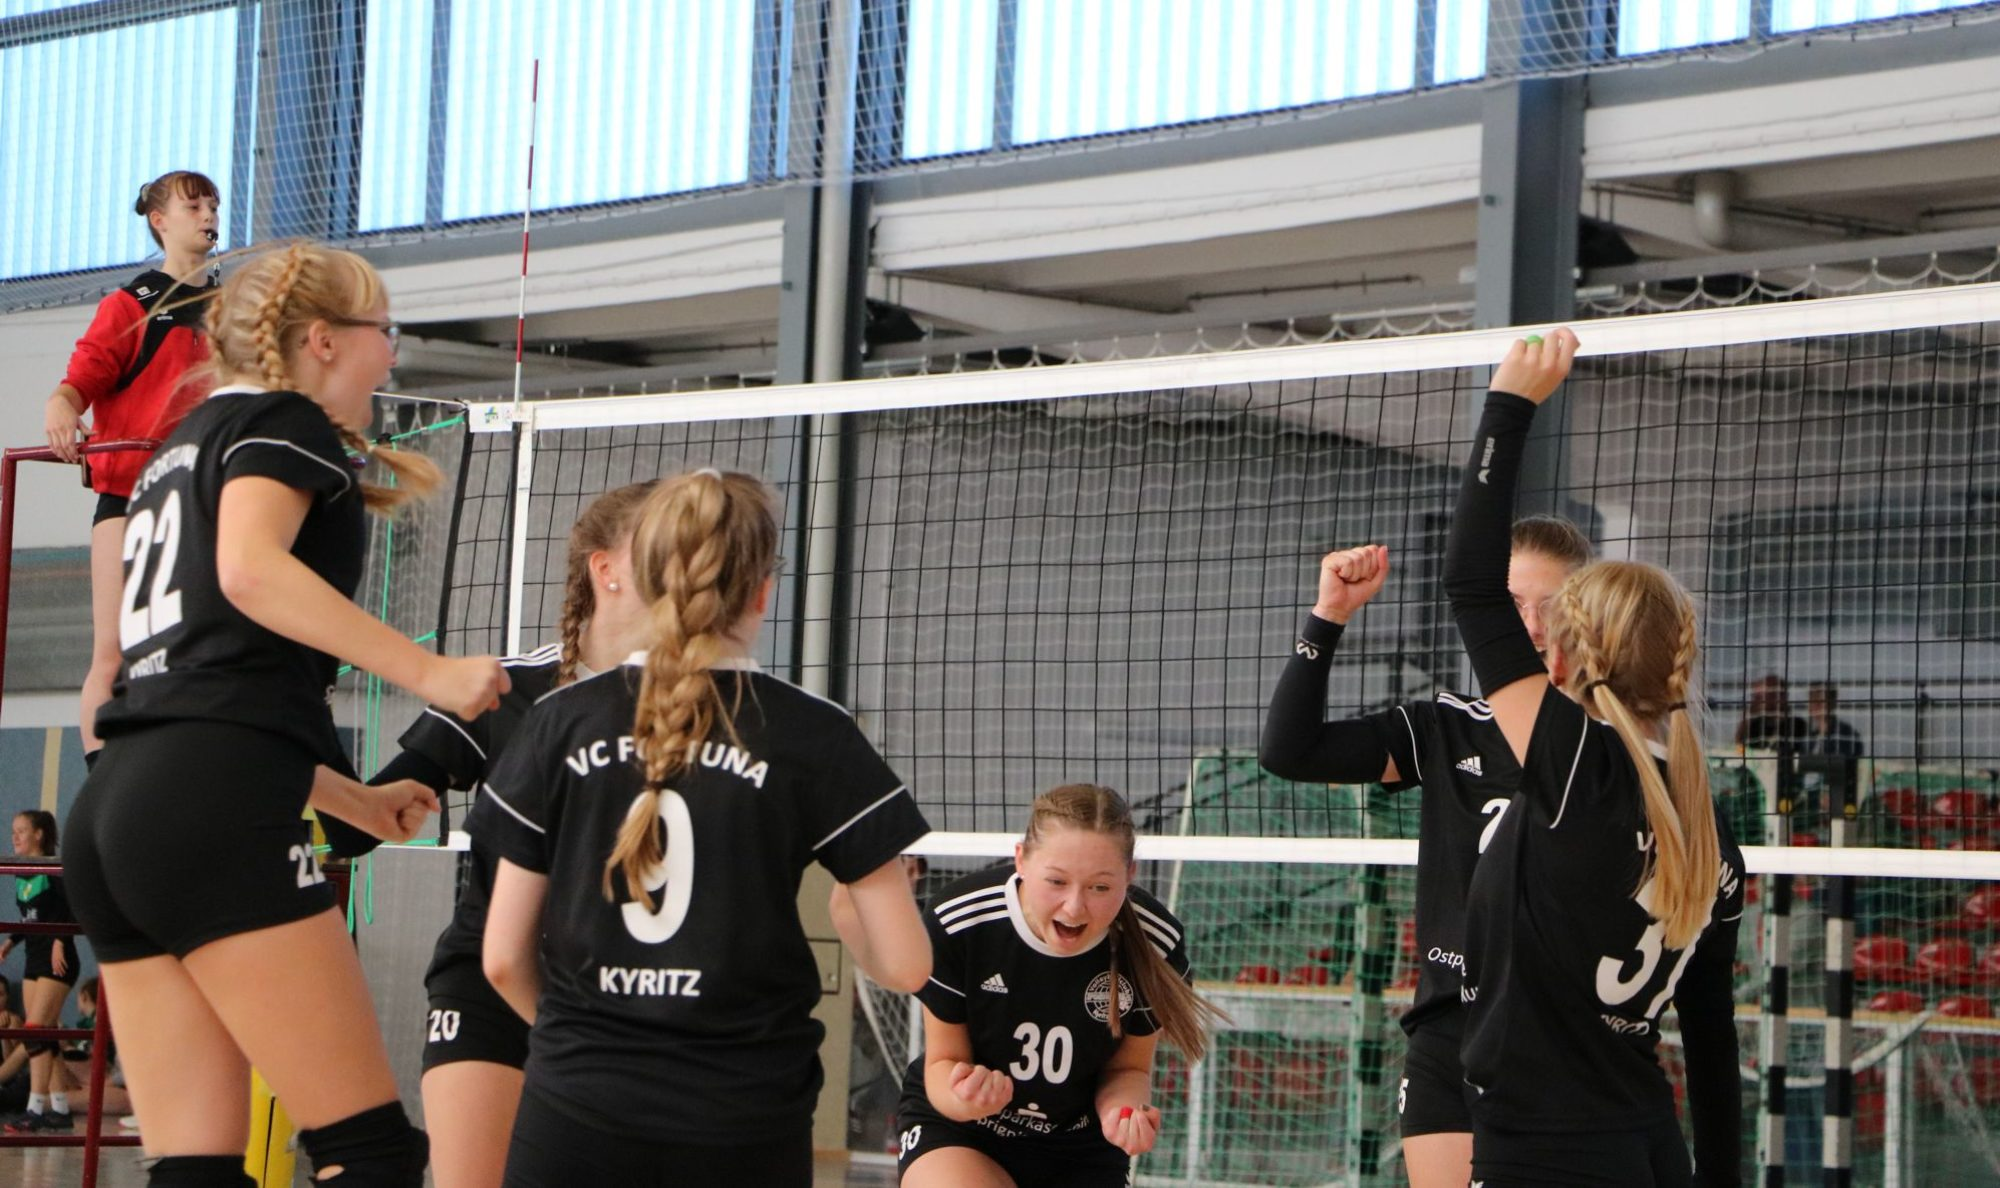 Volleyballclub Fortuna Kyritz